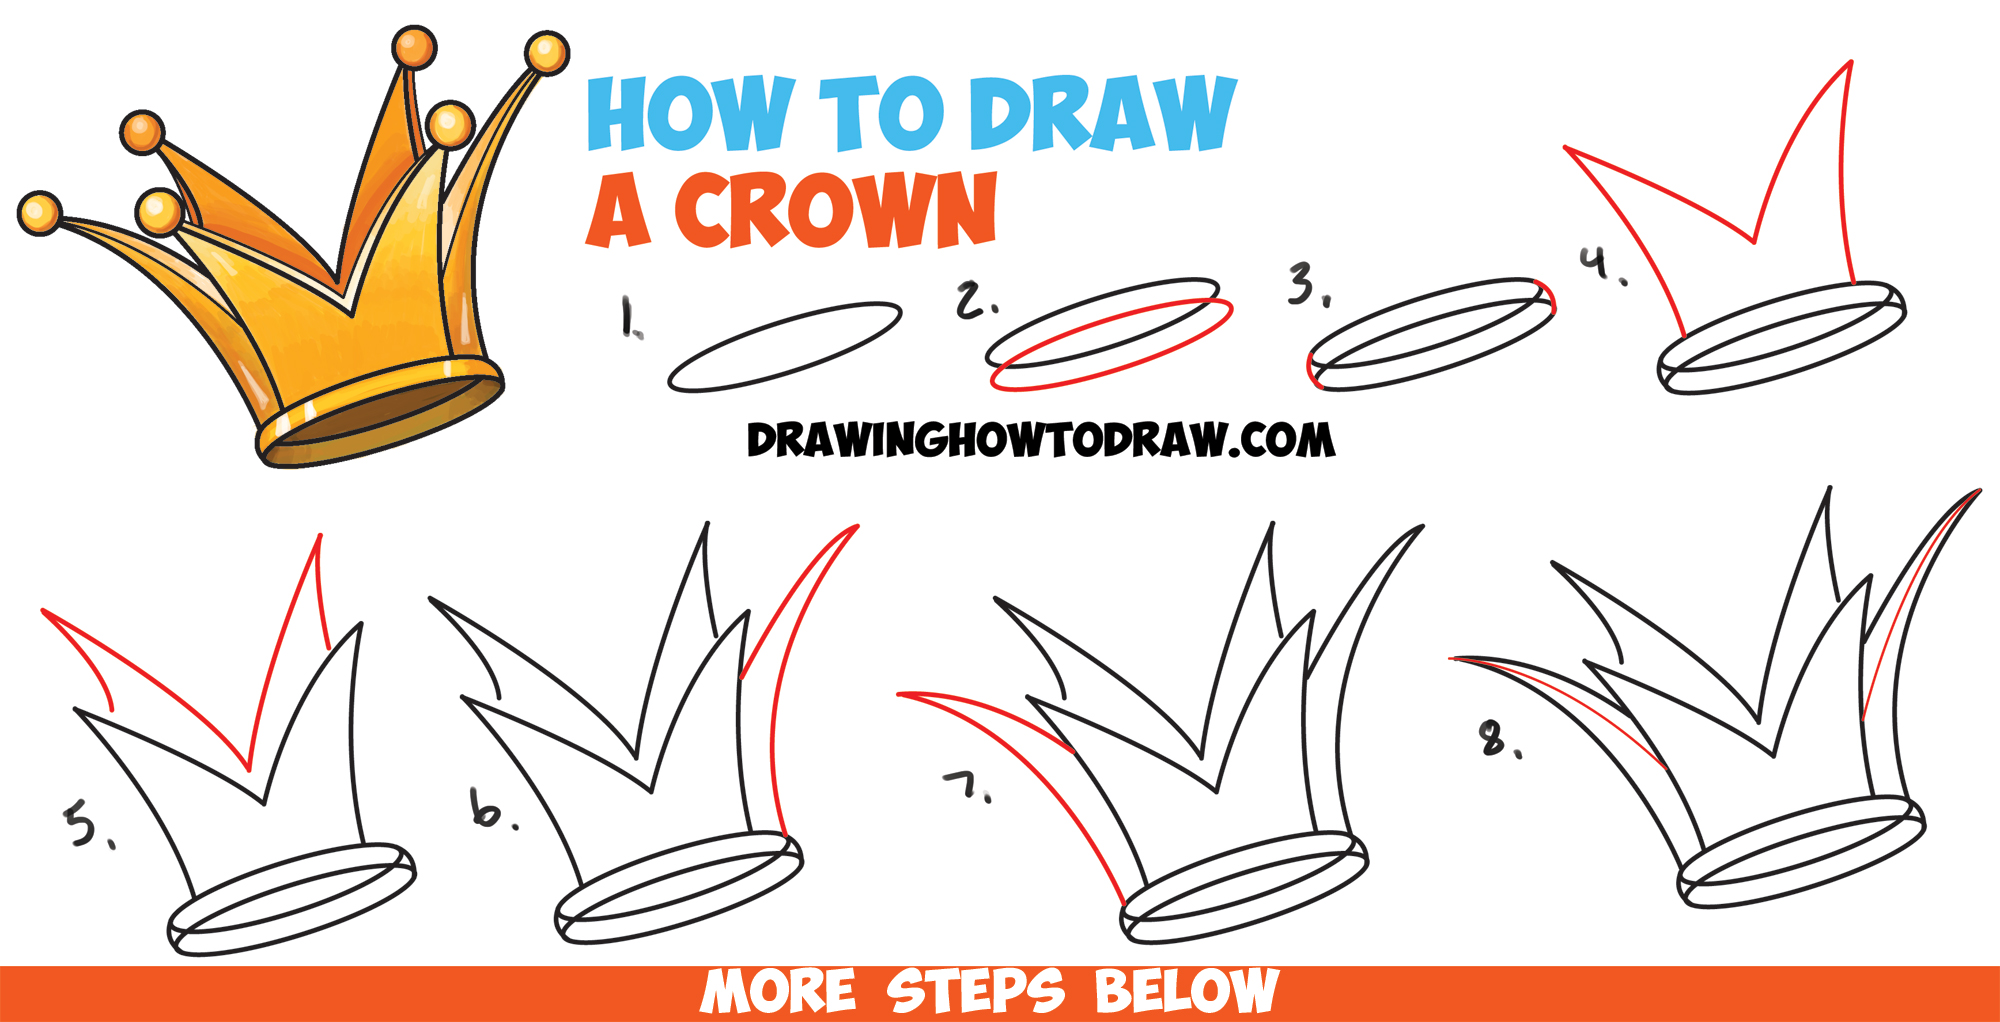 how to draw a crown drawing cartoon crowns easy step by step drawing tutorial